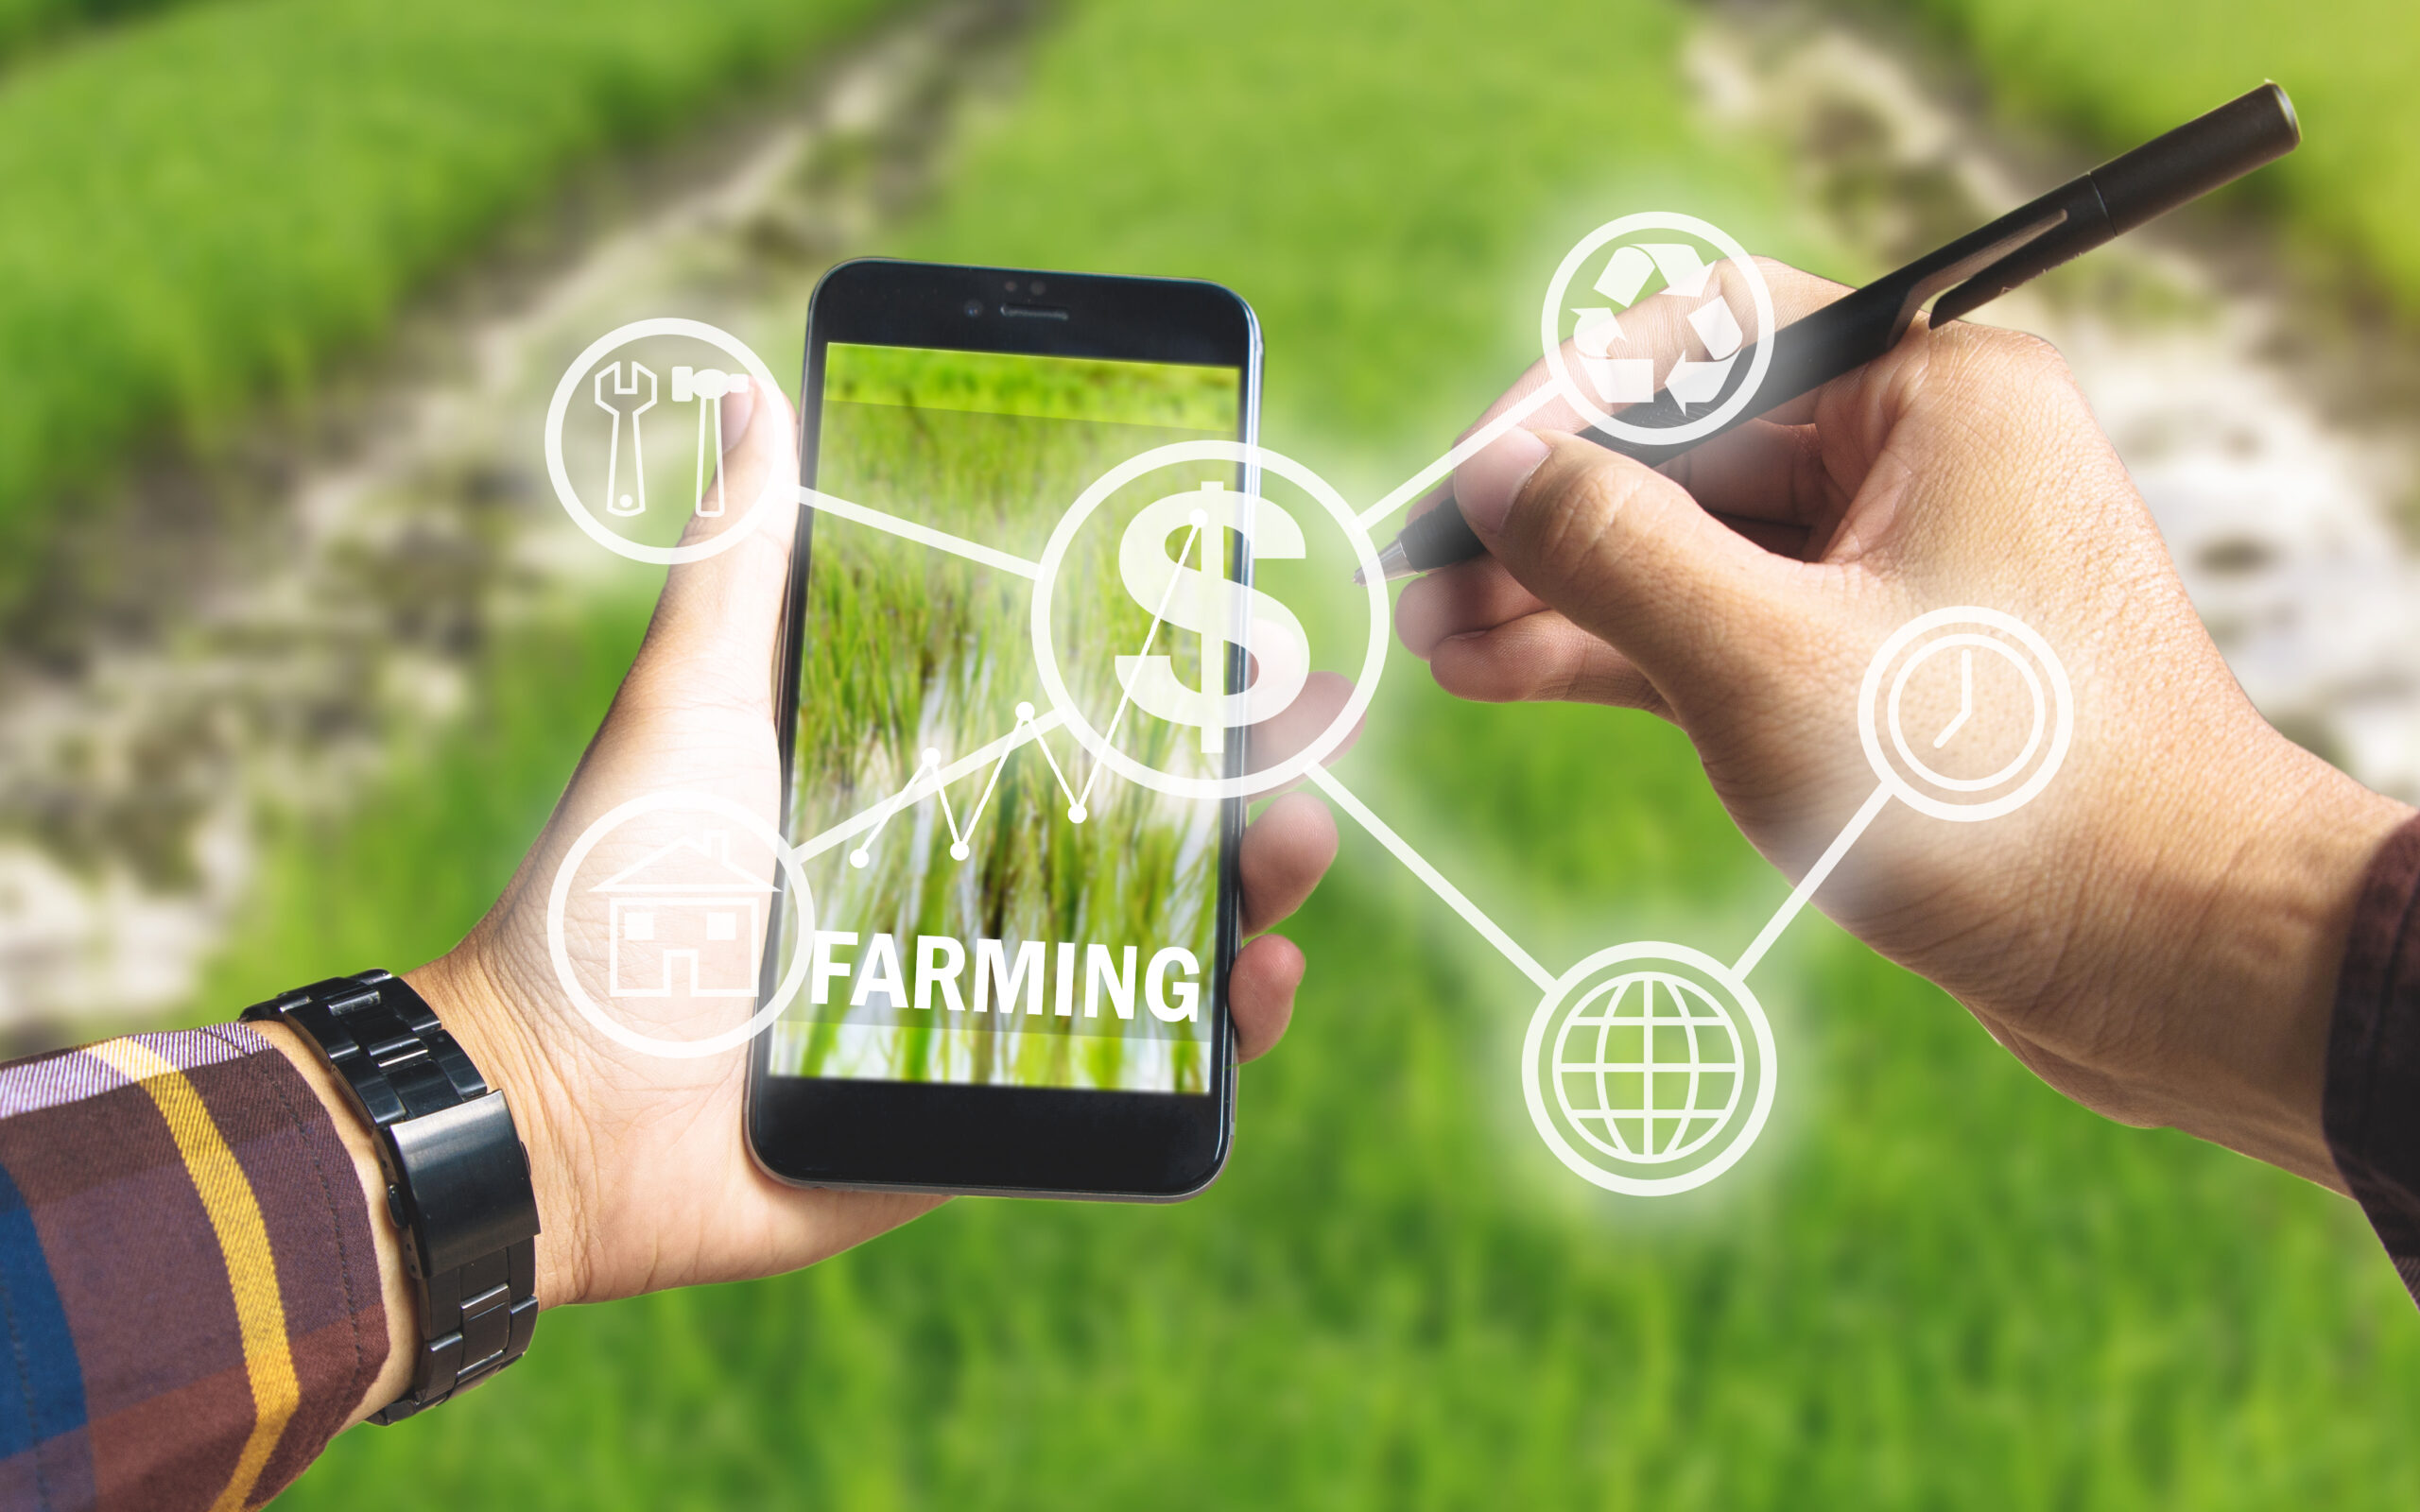 Open Call to expand the community network of the H2020 SmartAgriHubs project